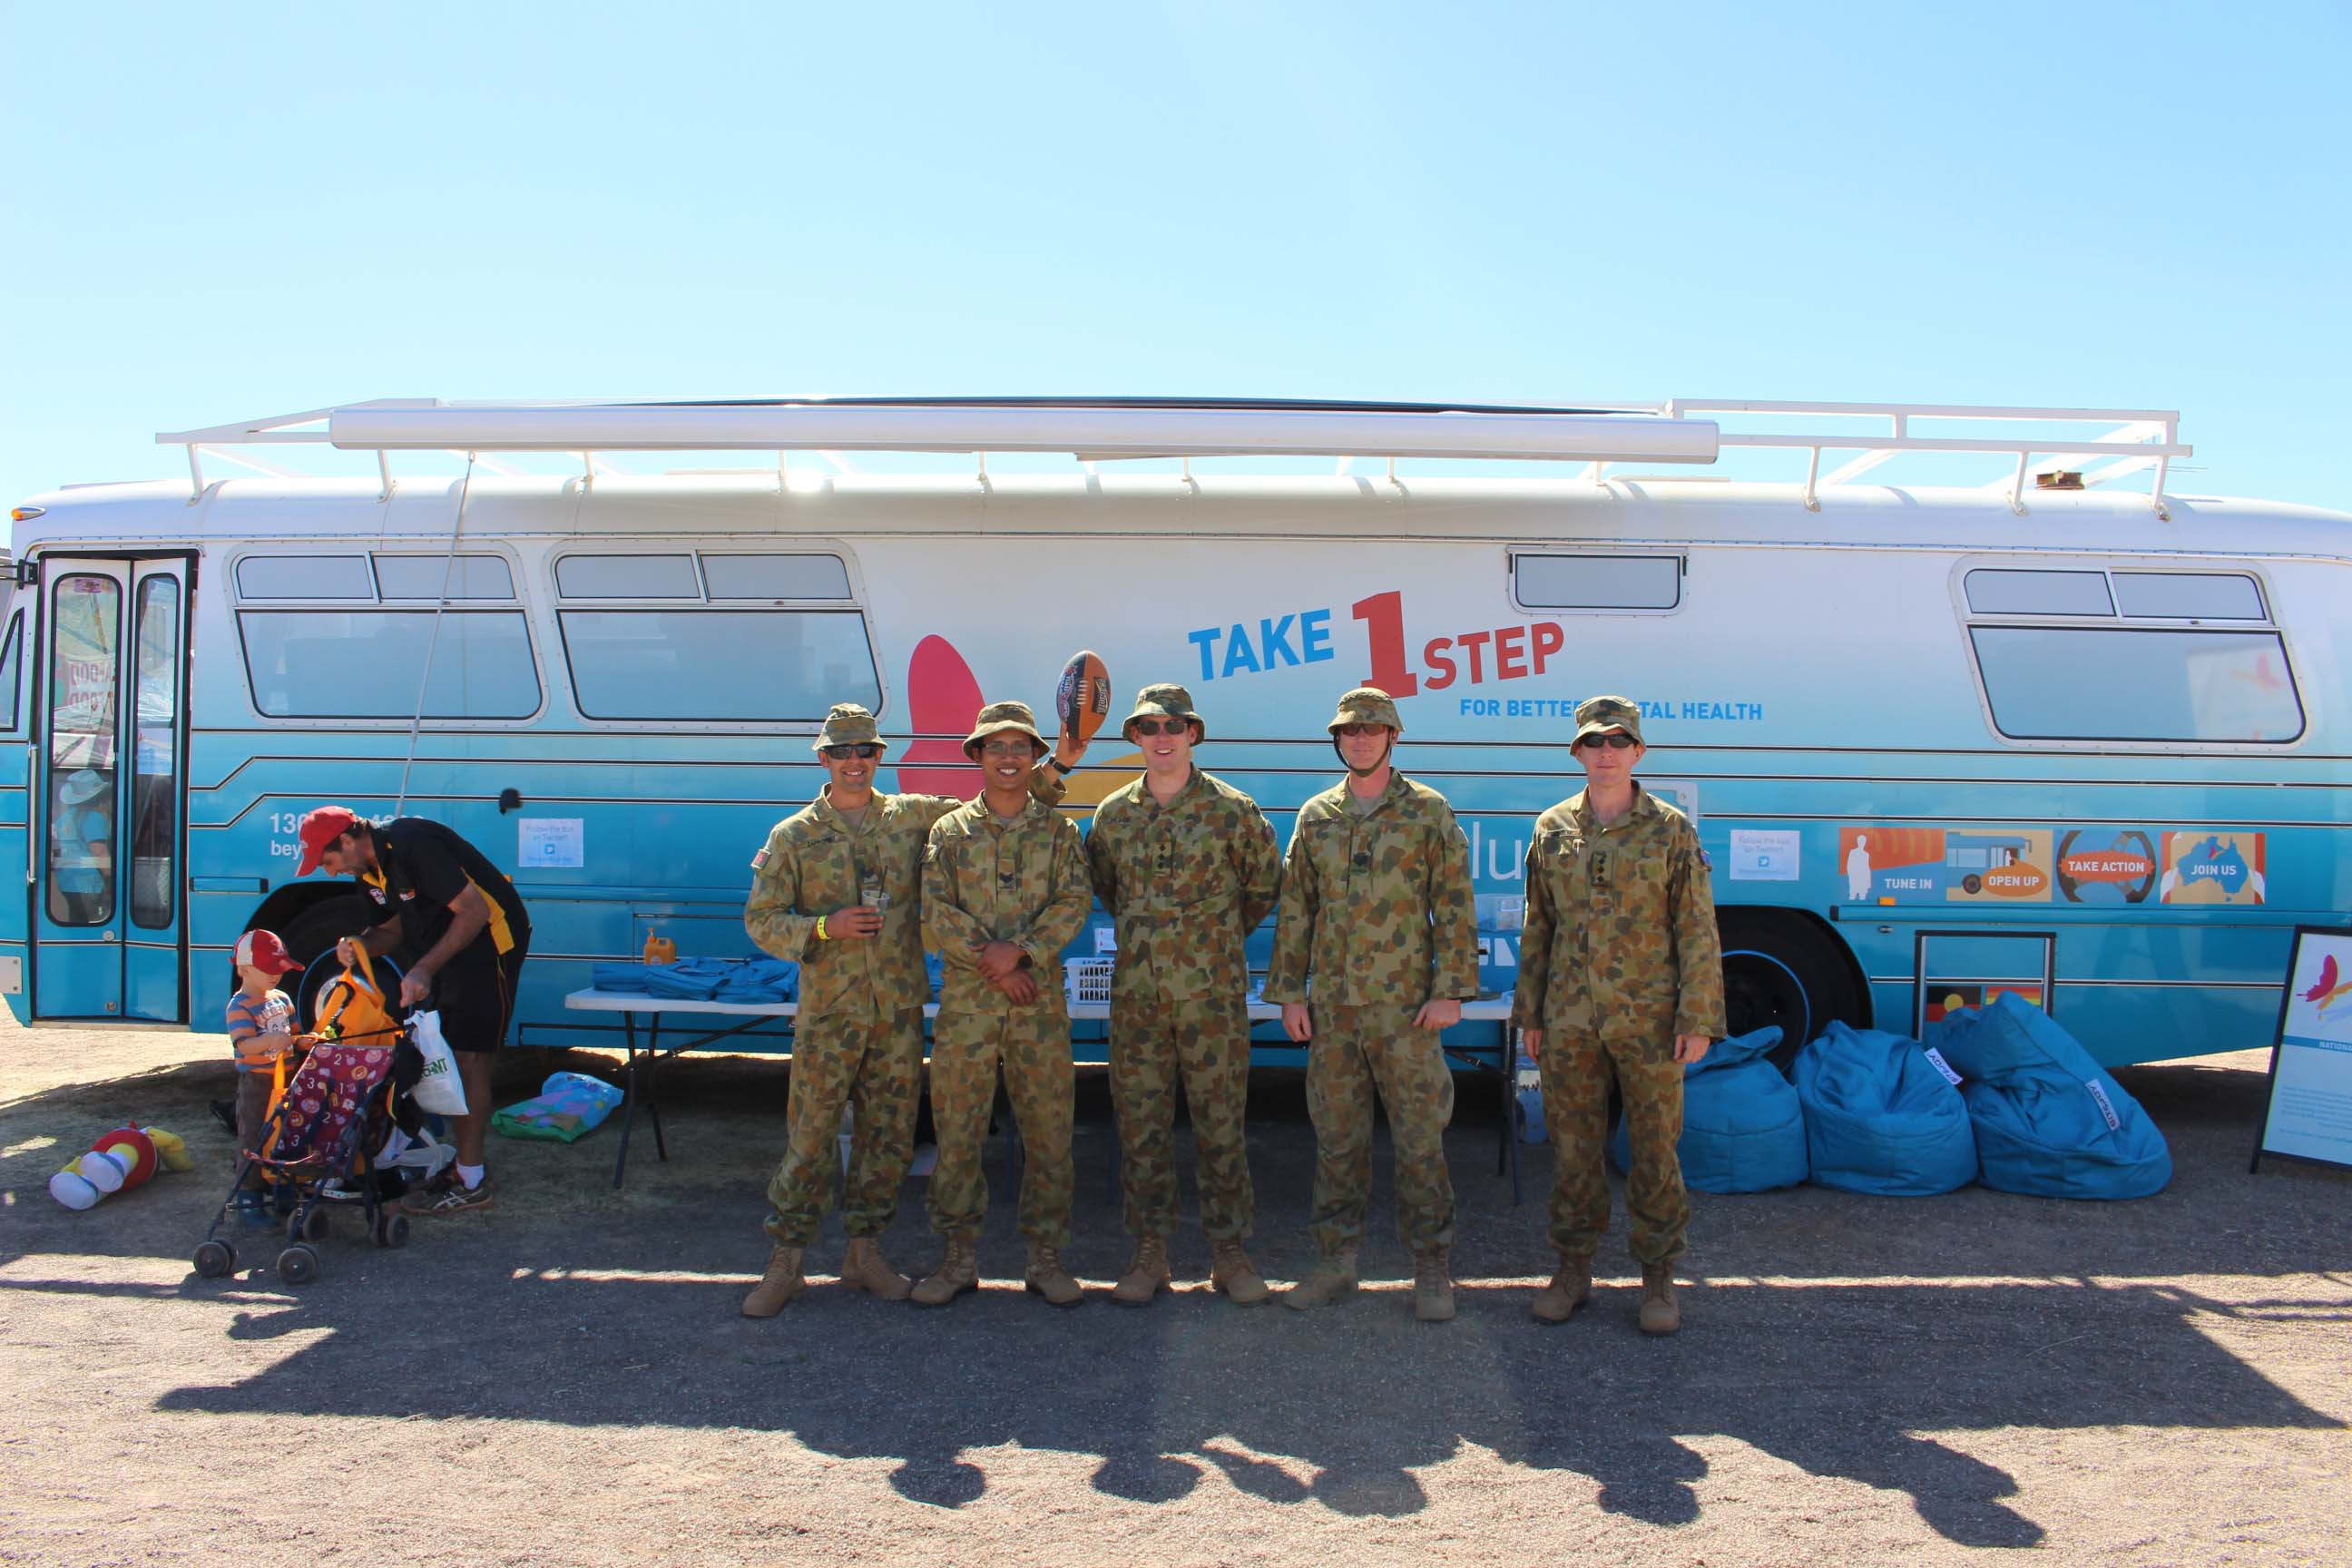 Members of the Australian Defence Force enjoyed a day at the Tennant Creek Show.